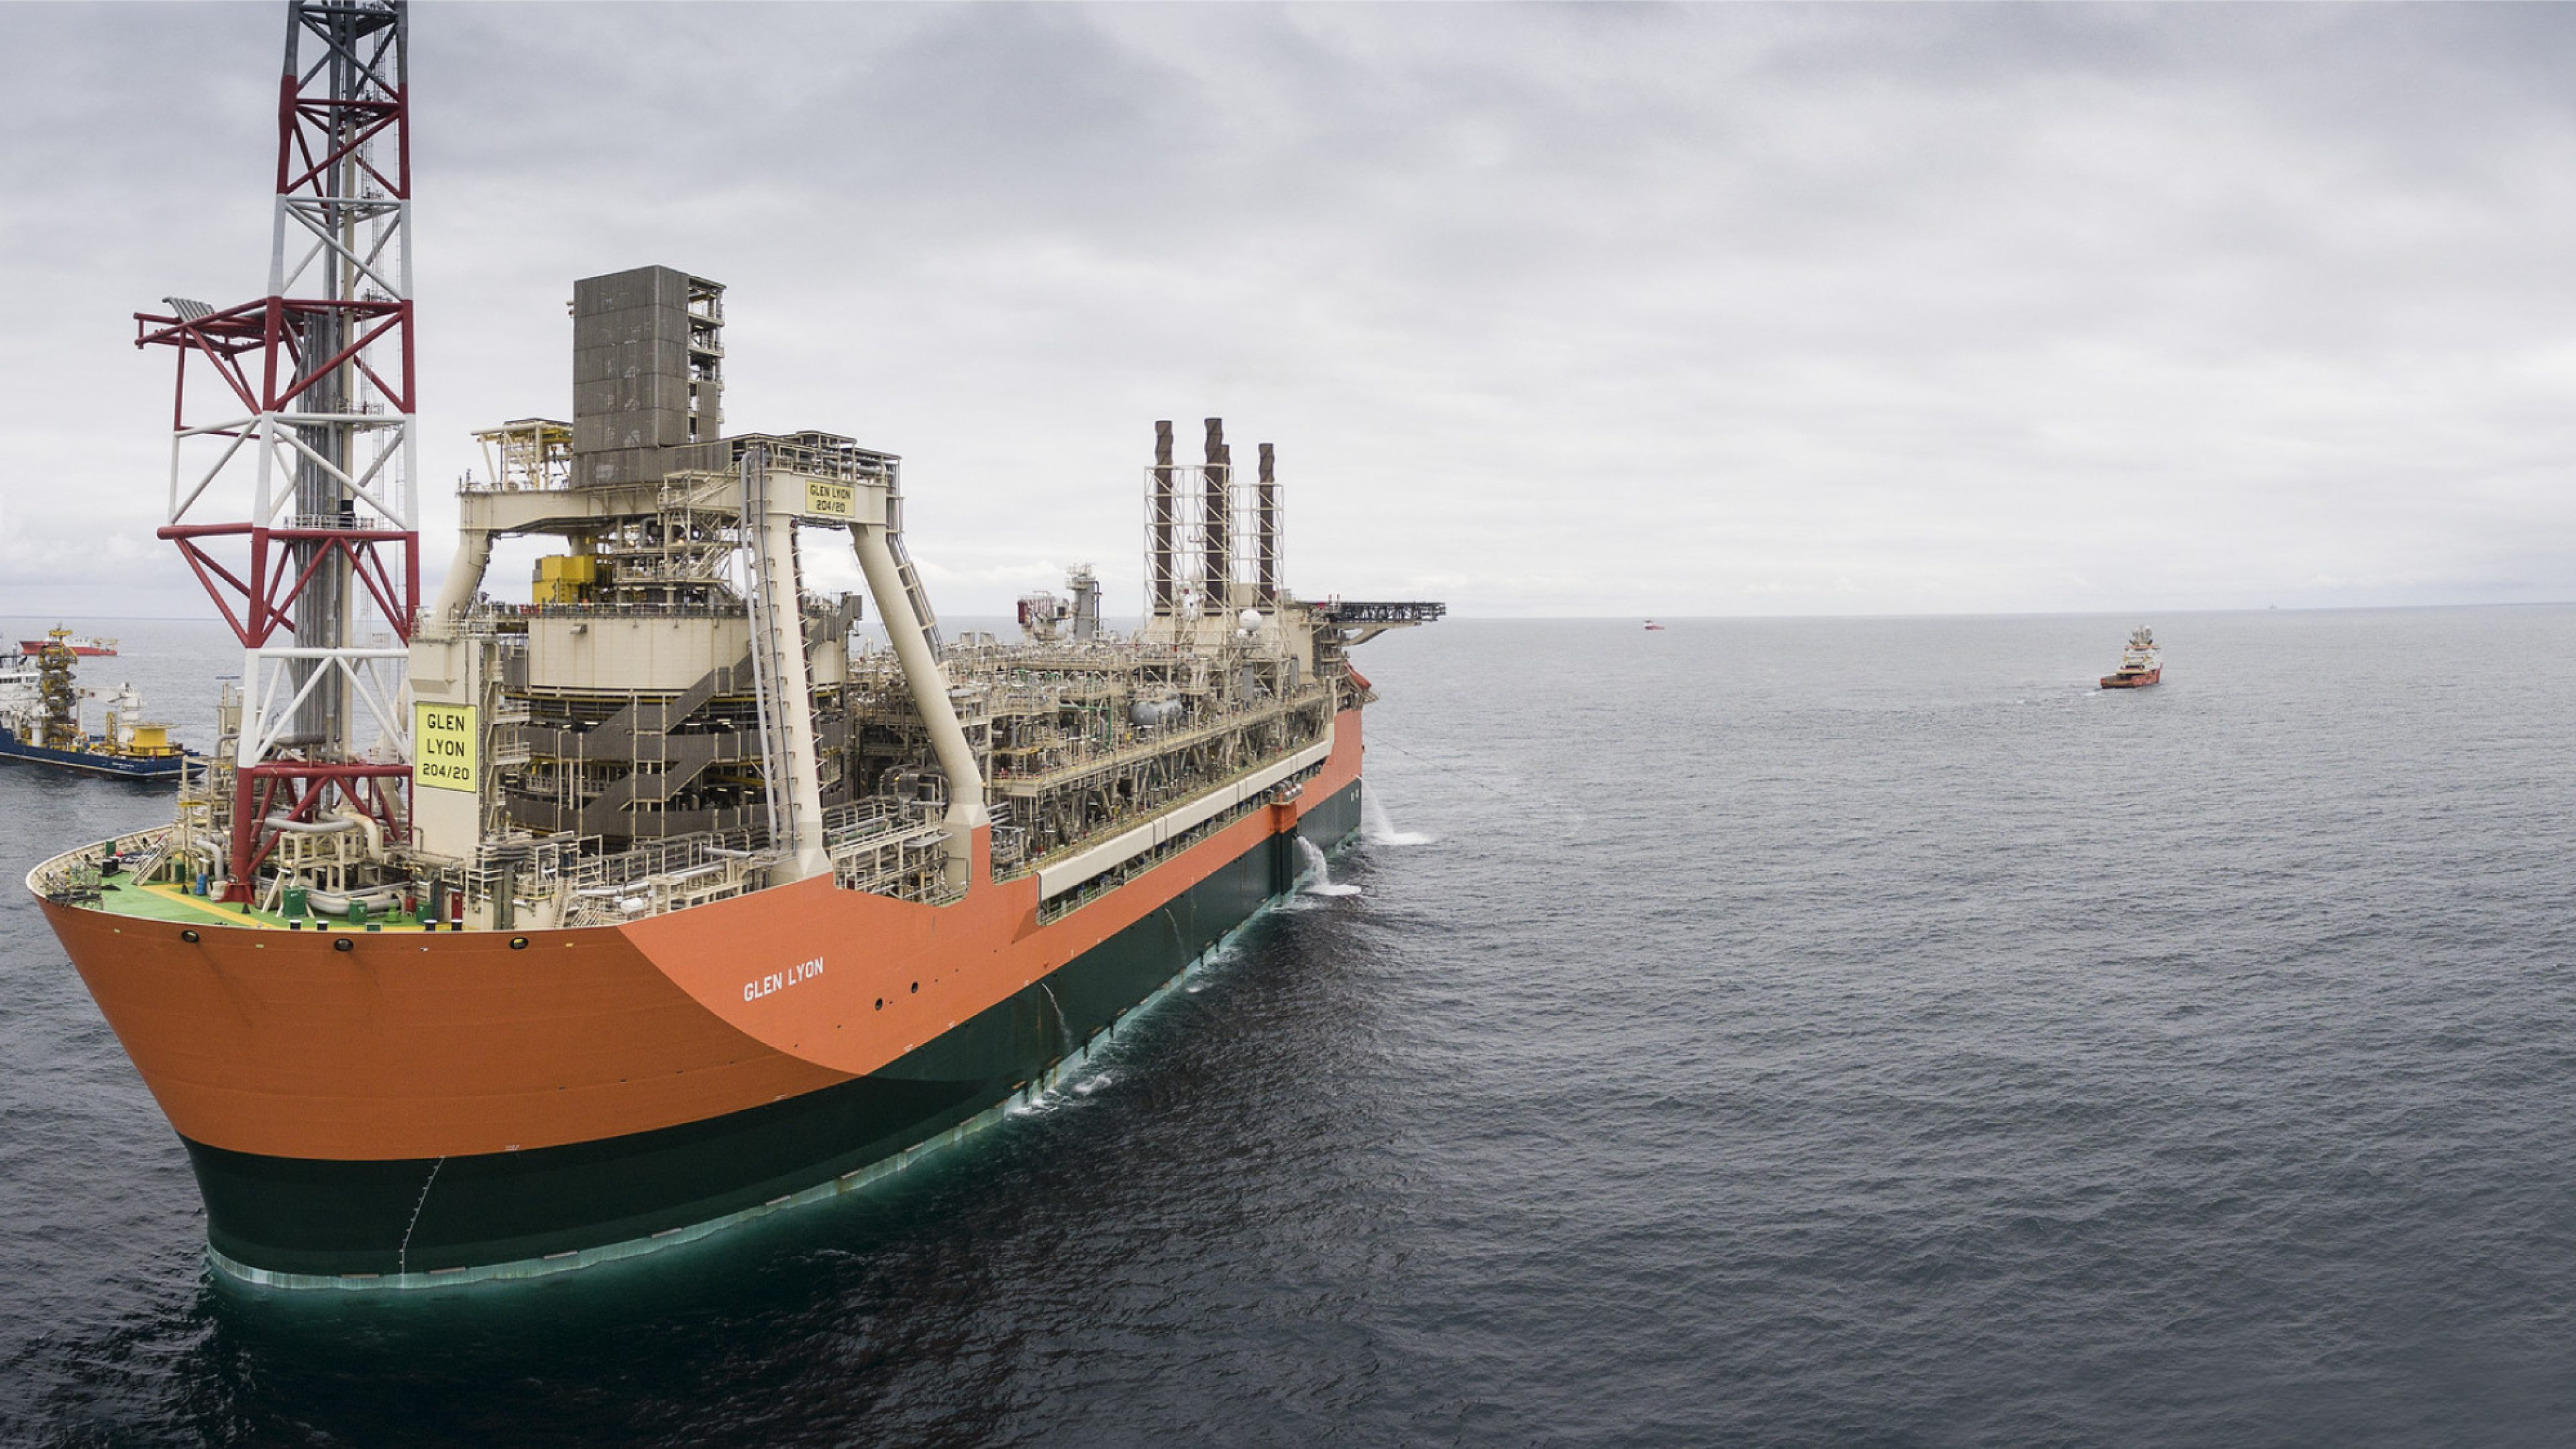 Glen Lyon floating, production, storage and offloading (FPSO) vessel